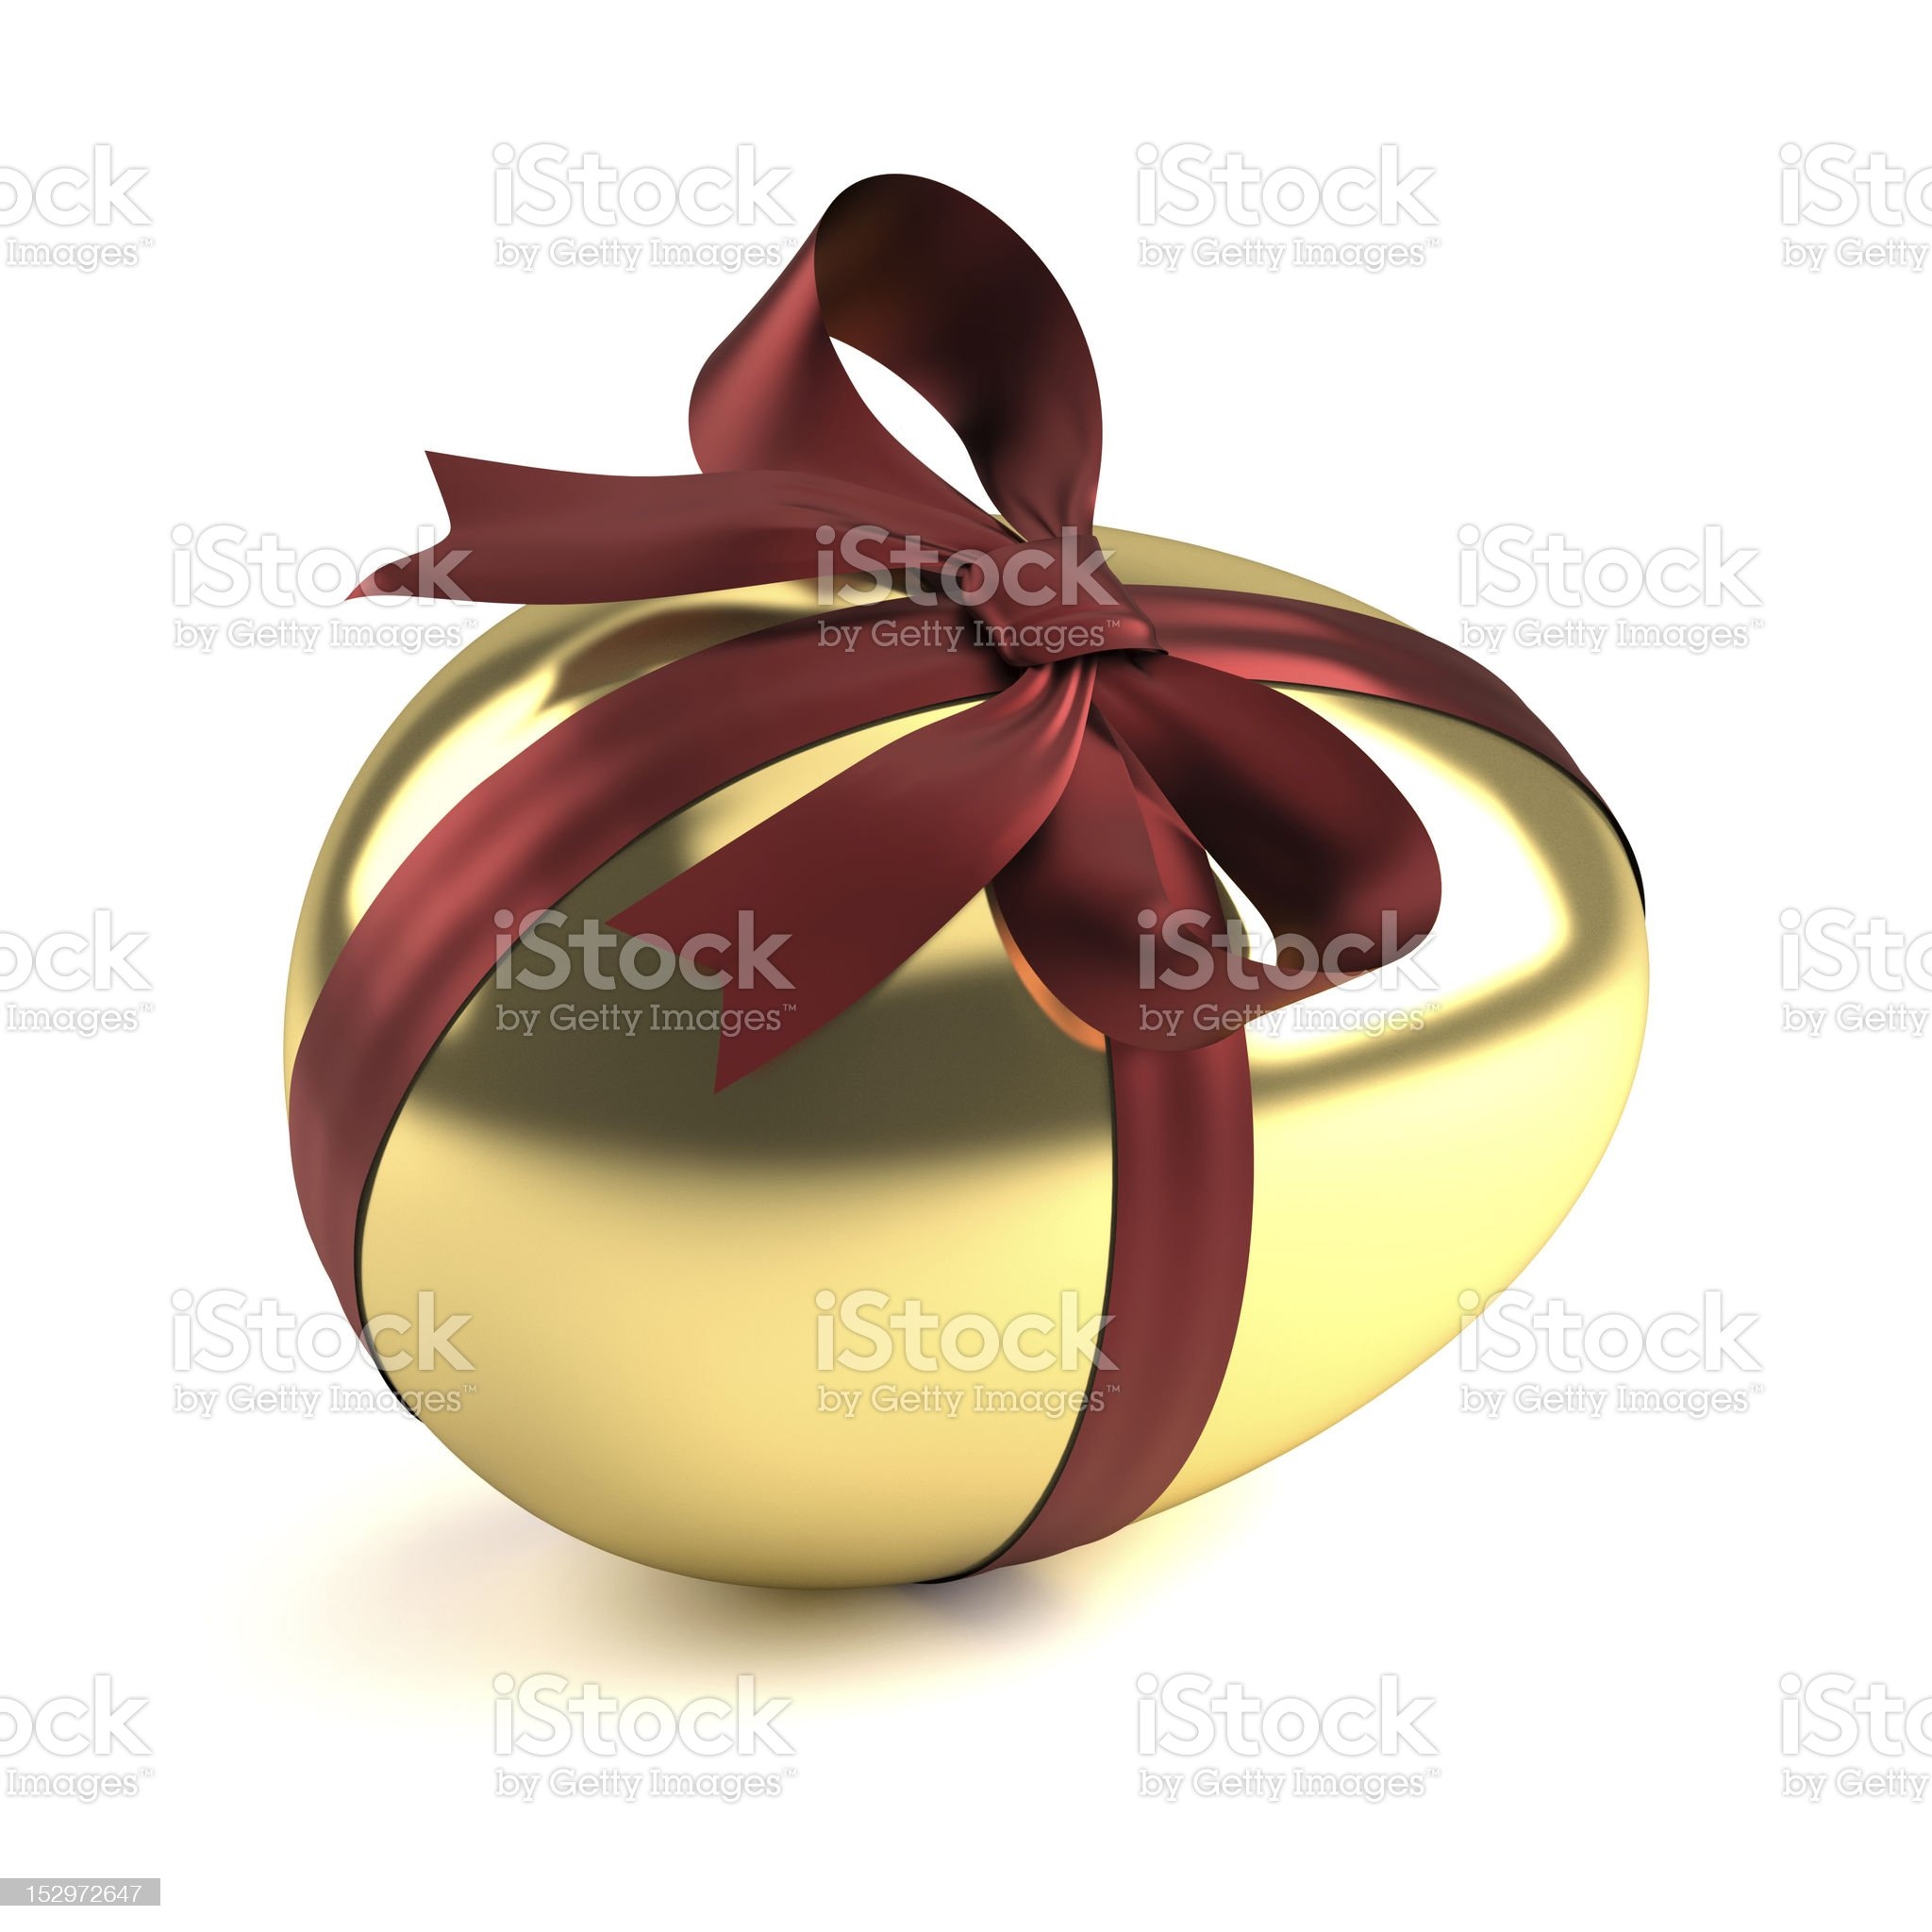 golden easter egg with red ribbon royalty-free stock photo